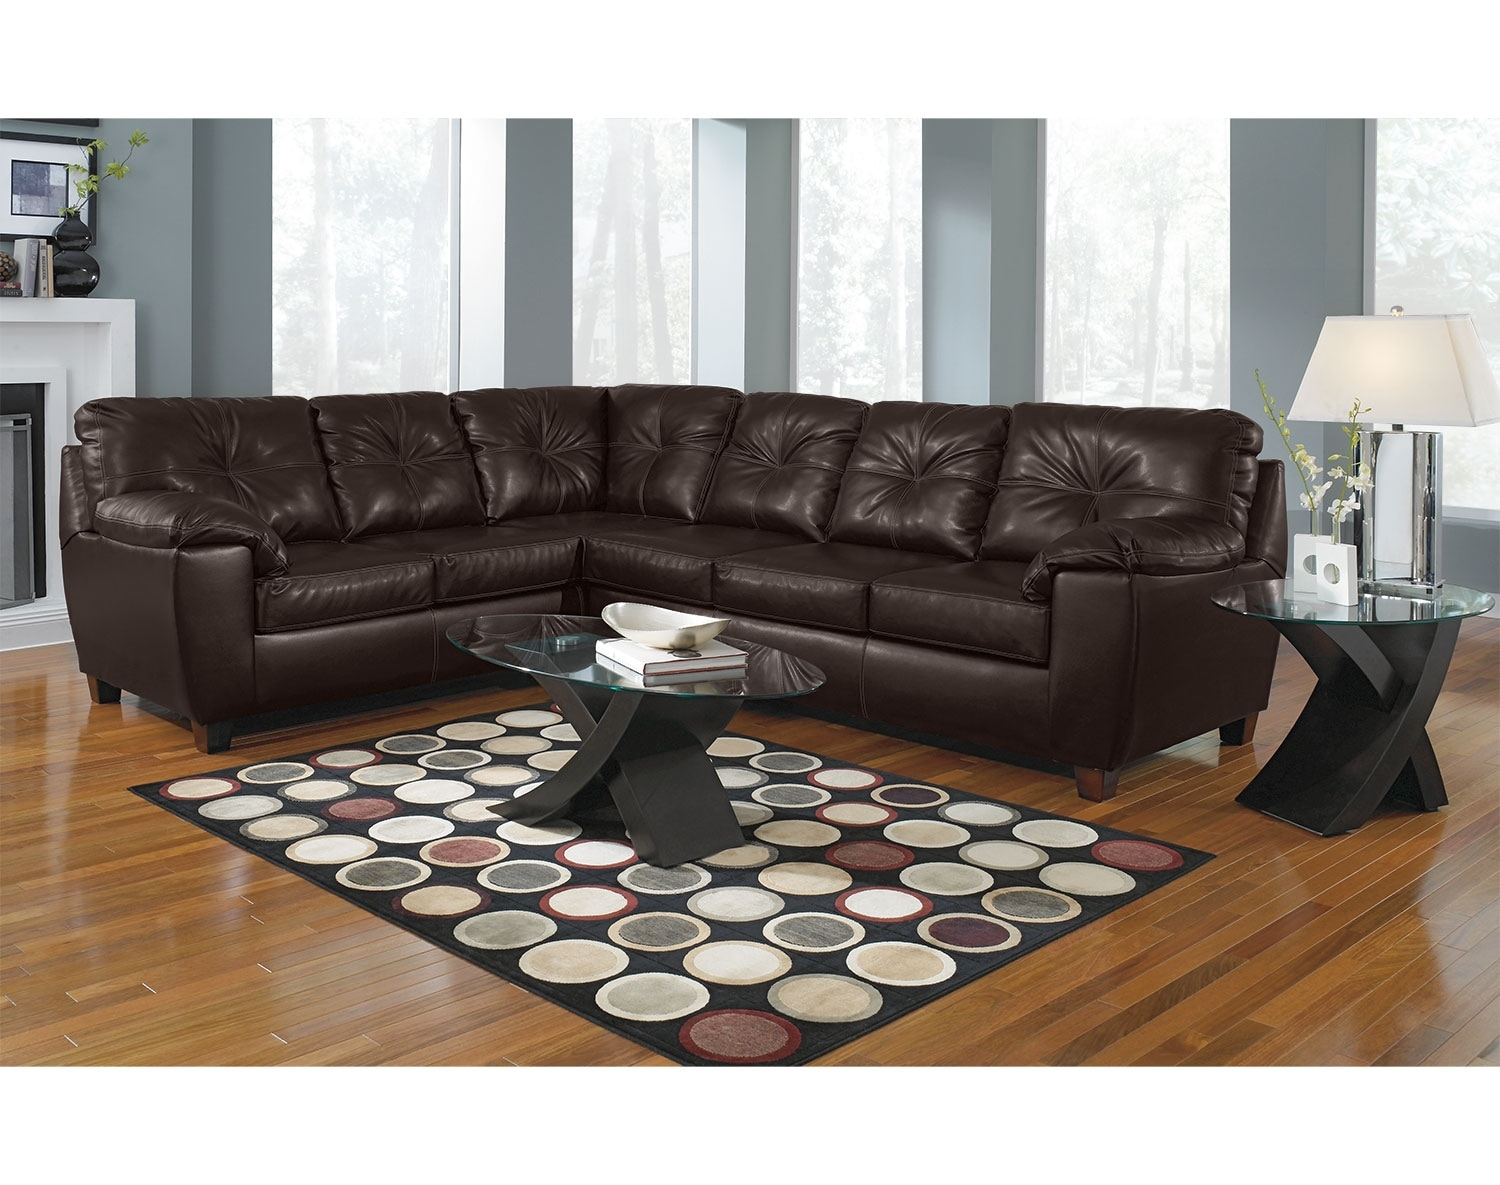 Leather sofa factory outlet engrossing modern sofas los angeles tags sofa thesofa Home furnishings factory outlet